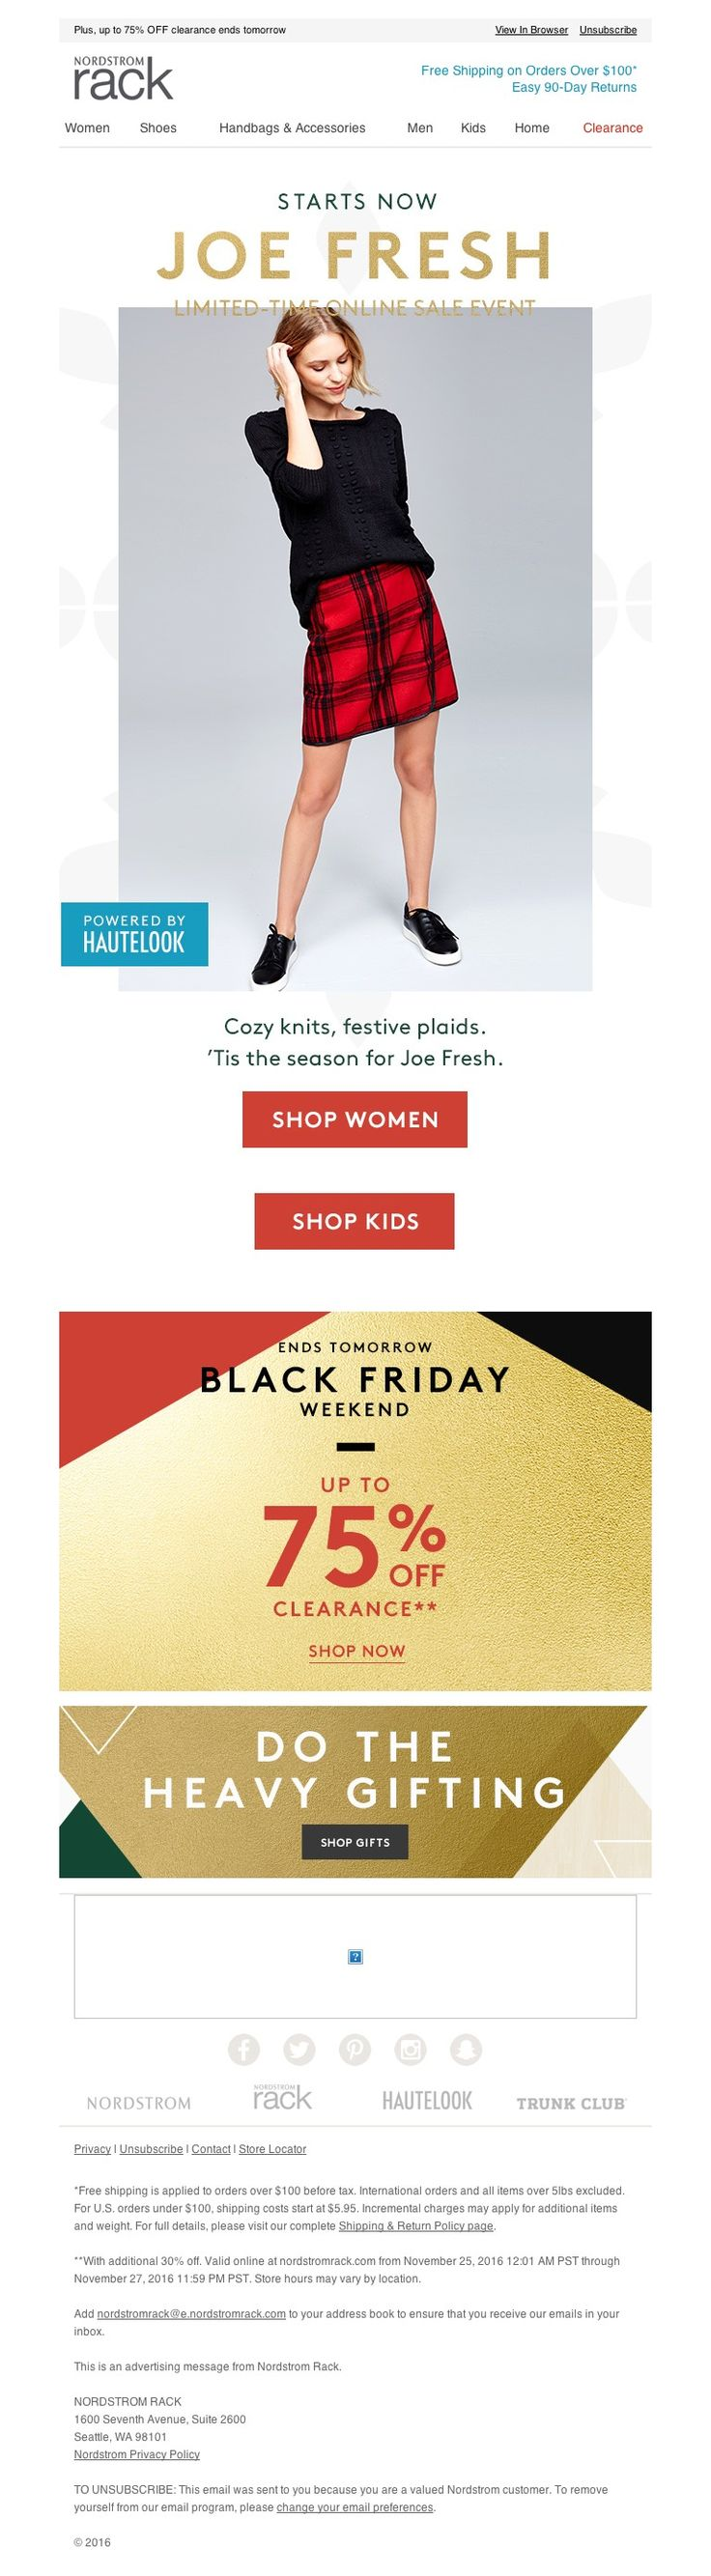 Nordstrom Rack - The Joe Fresh Event starts now!